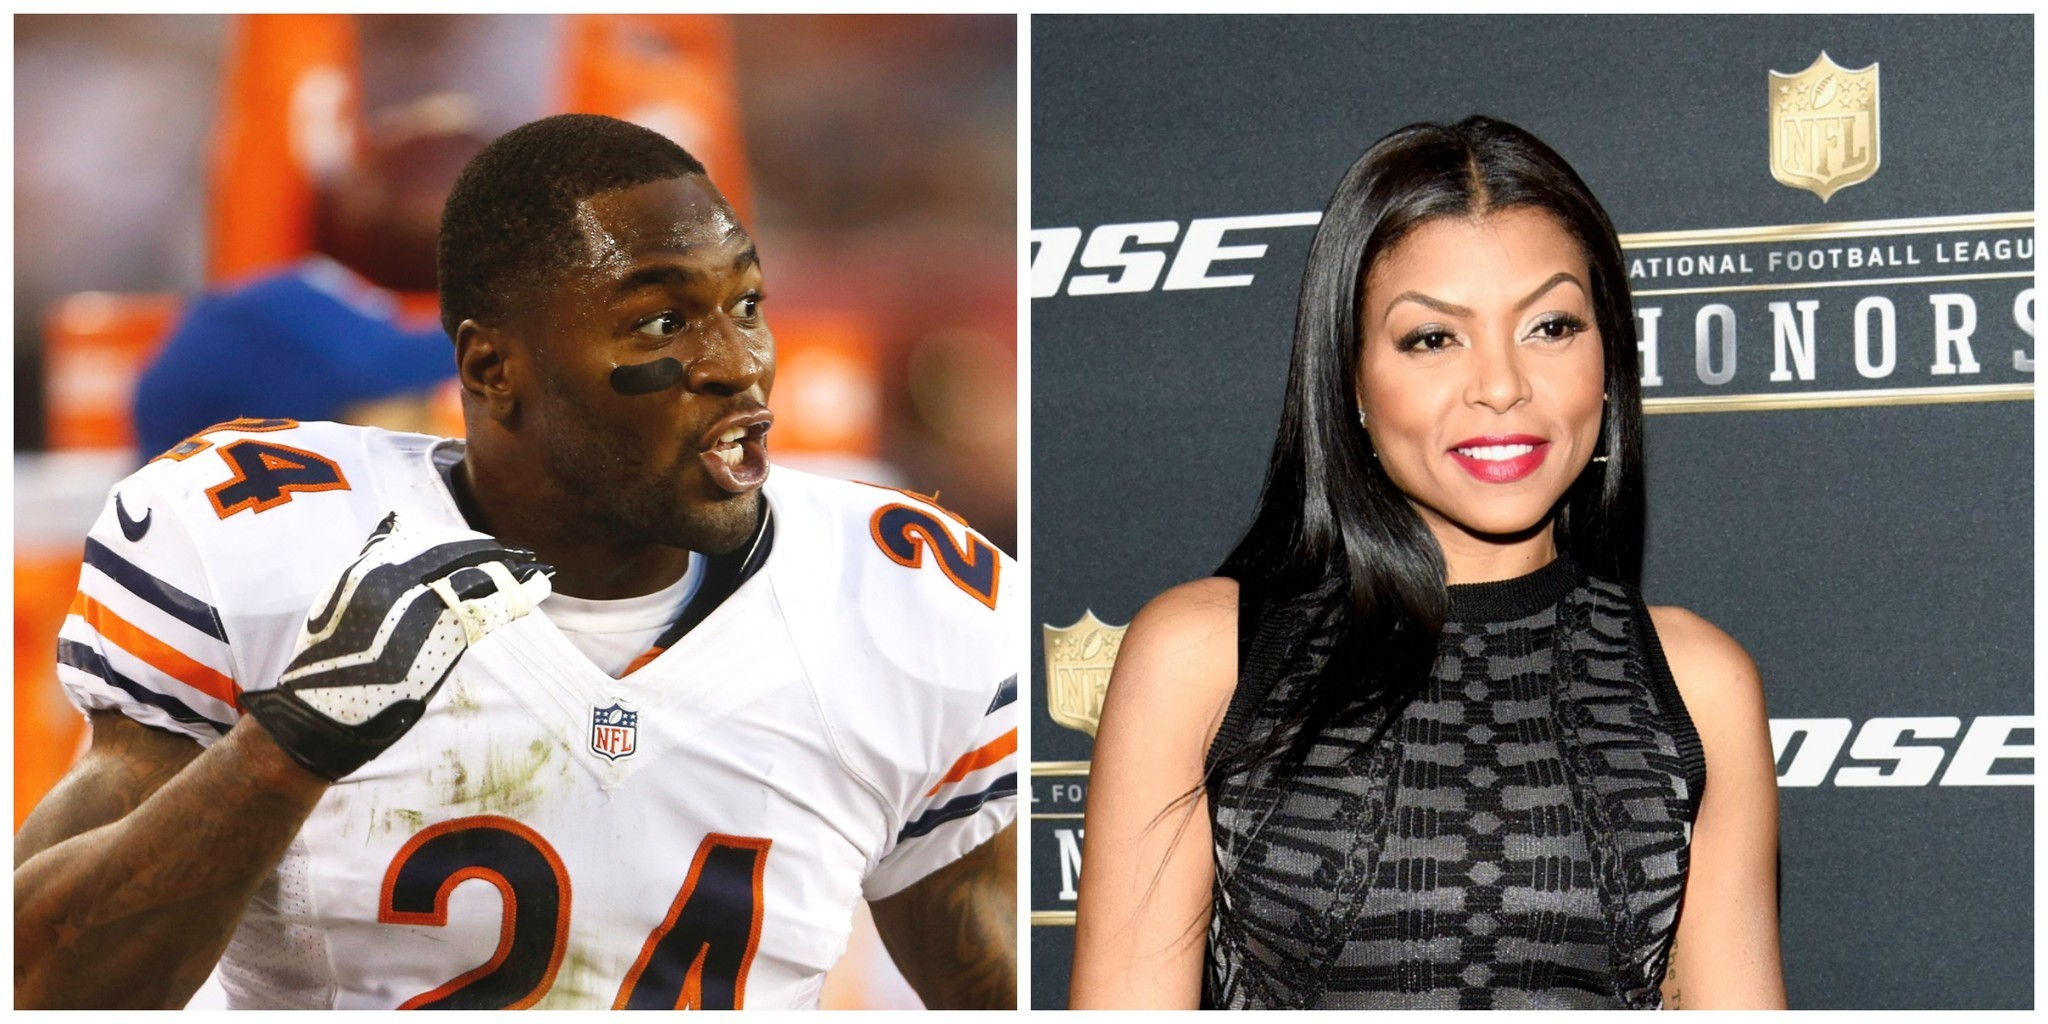 hayden dating Empire star taraji p henson said yes to former nfl player kelvin hayden on mother's day.